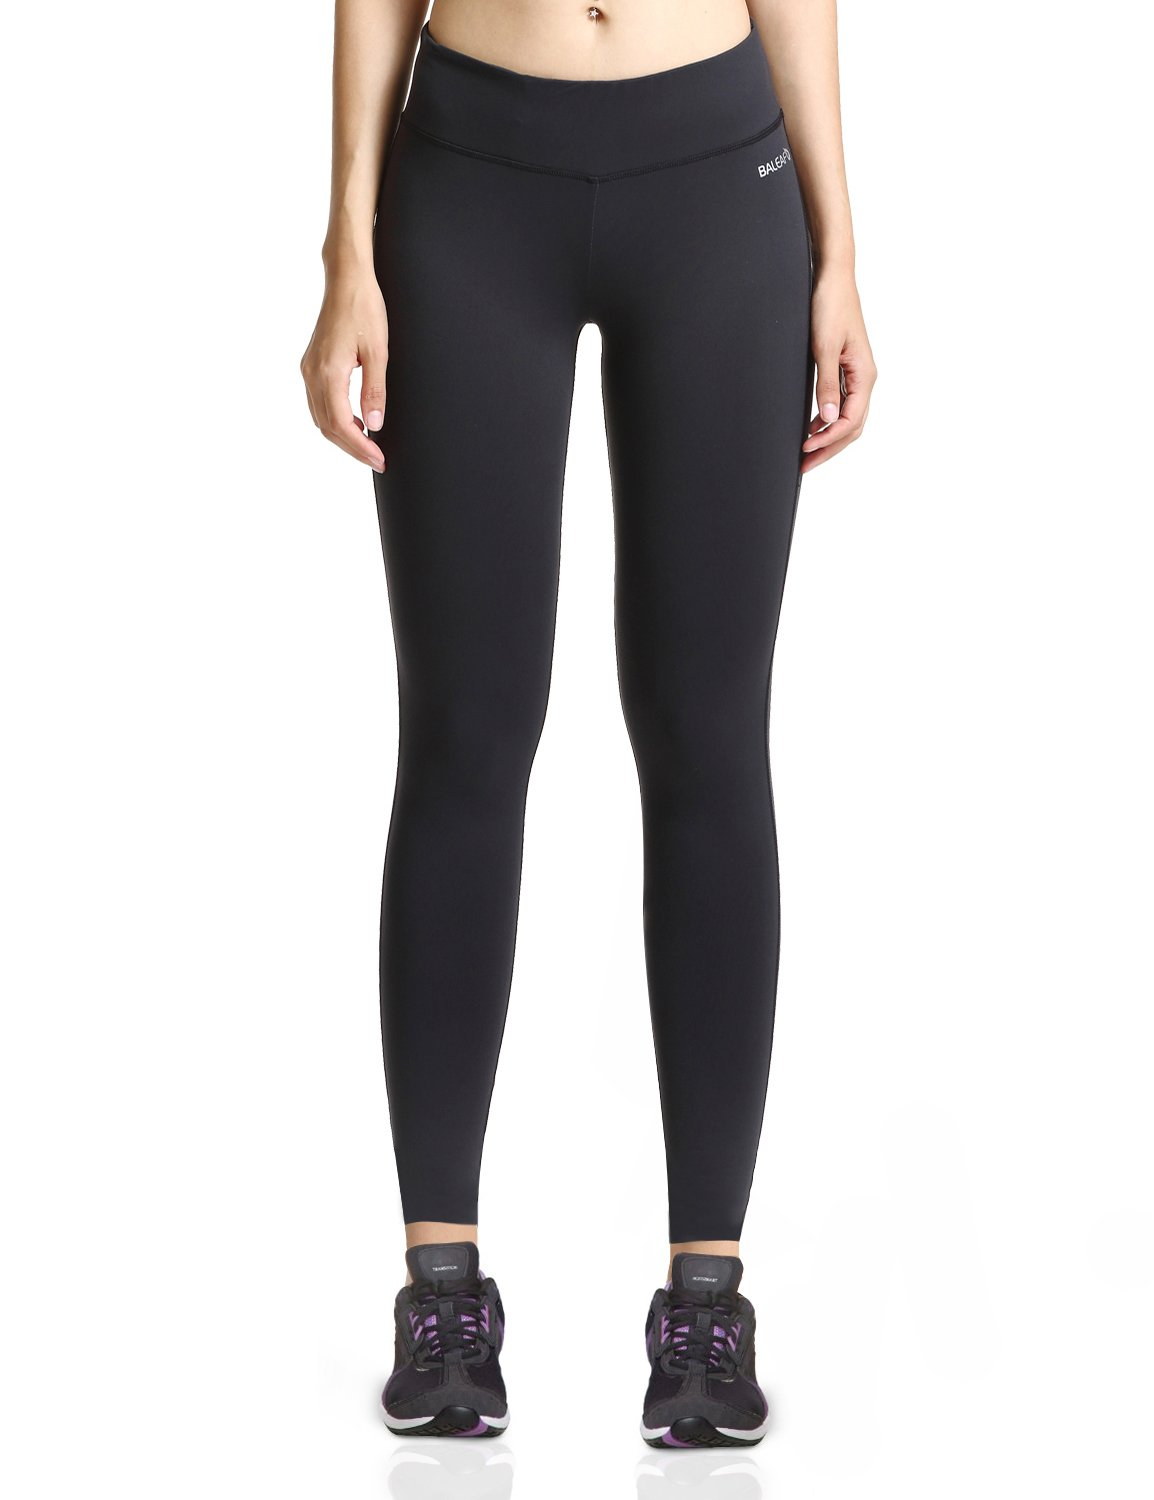 Baleaf Women's Ankle Legging Inner Pocket Non See-Through Black Size S